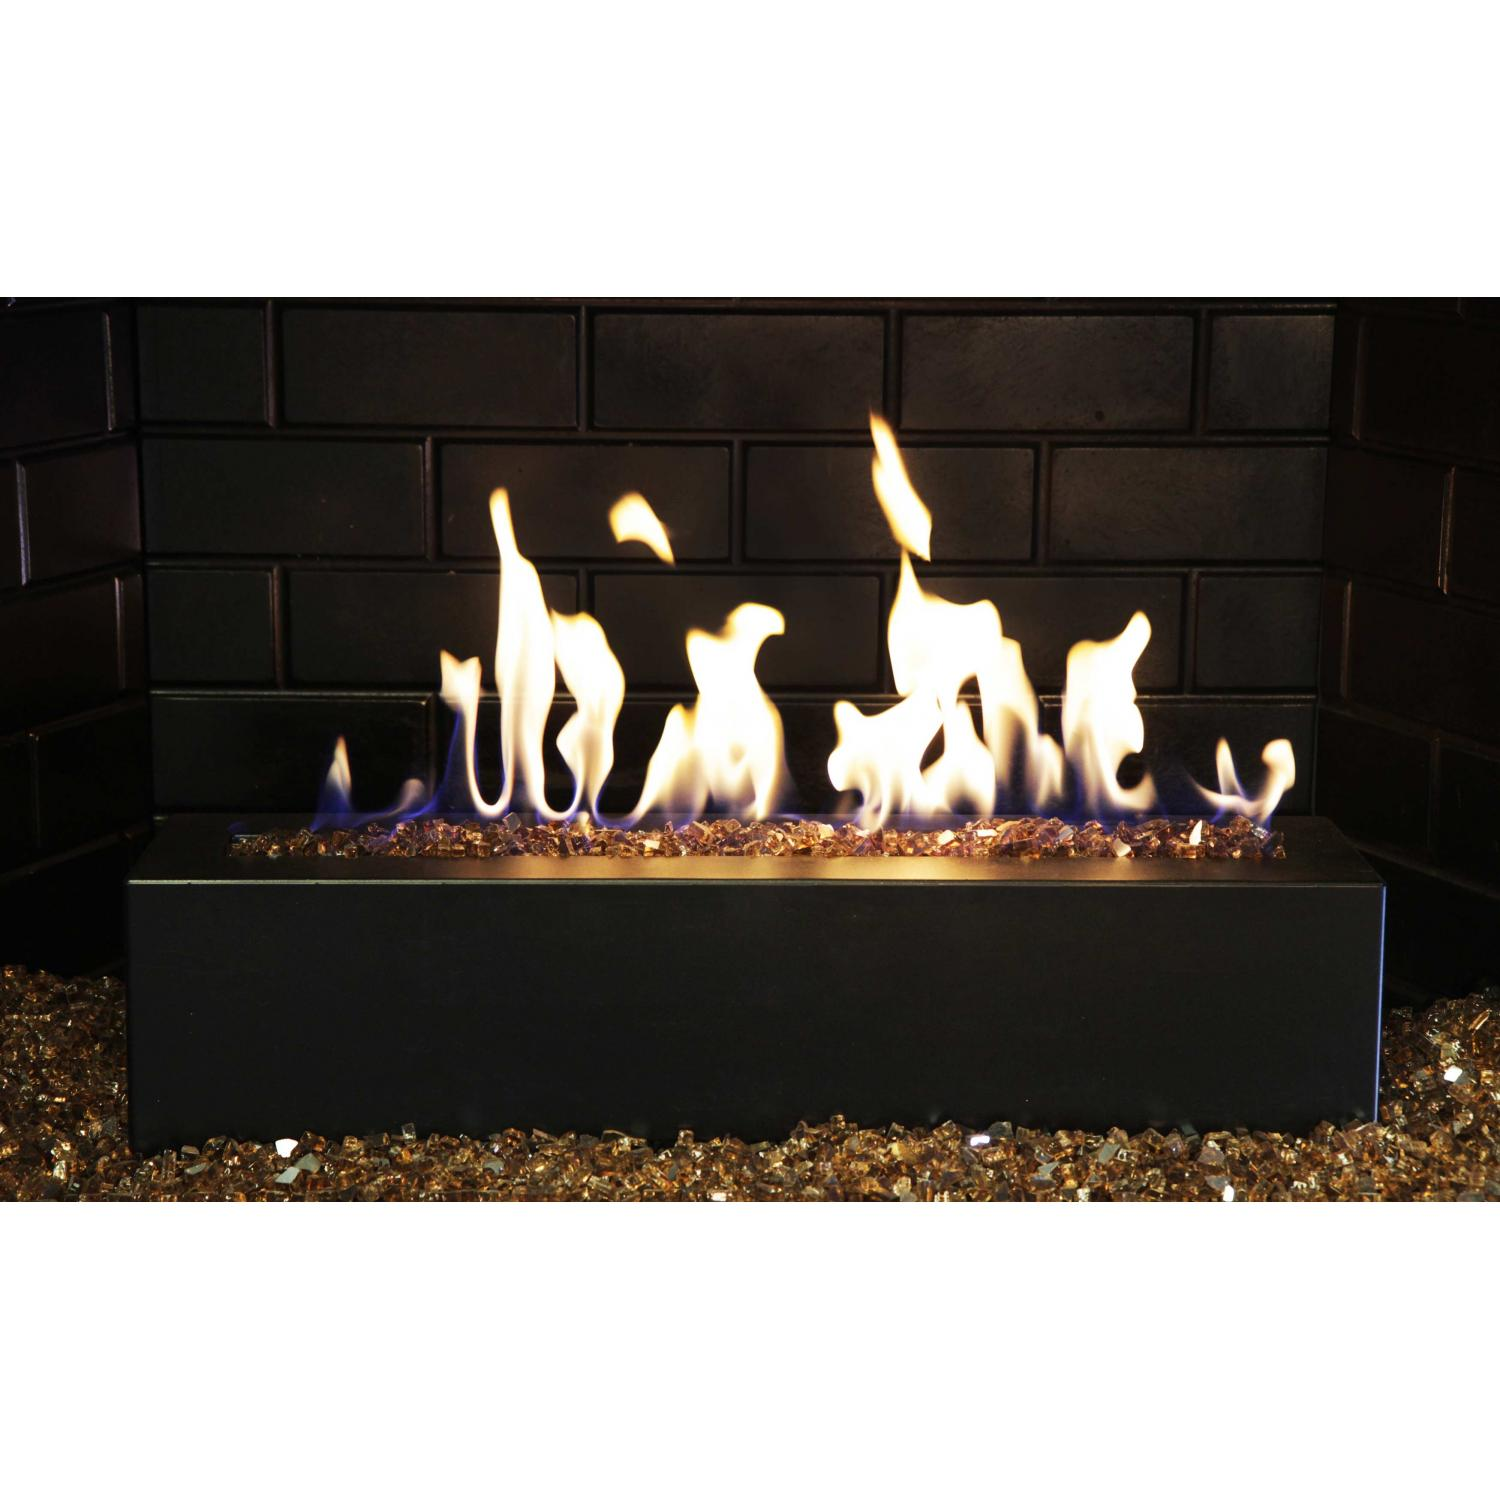 Picture of Golden Blount 24-Inch Alpine Linear Burner With Decorative Black Front Face And Copper Reflective Fire Glass